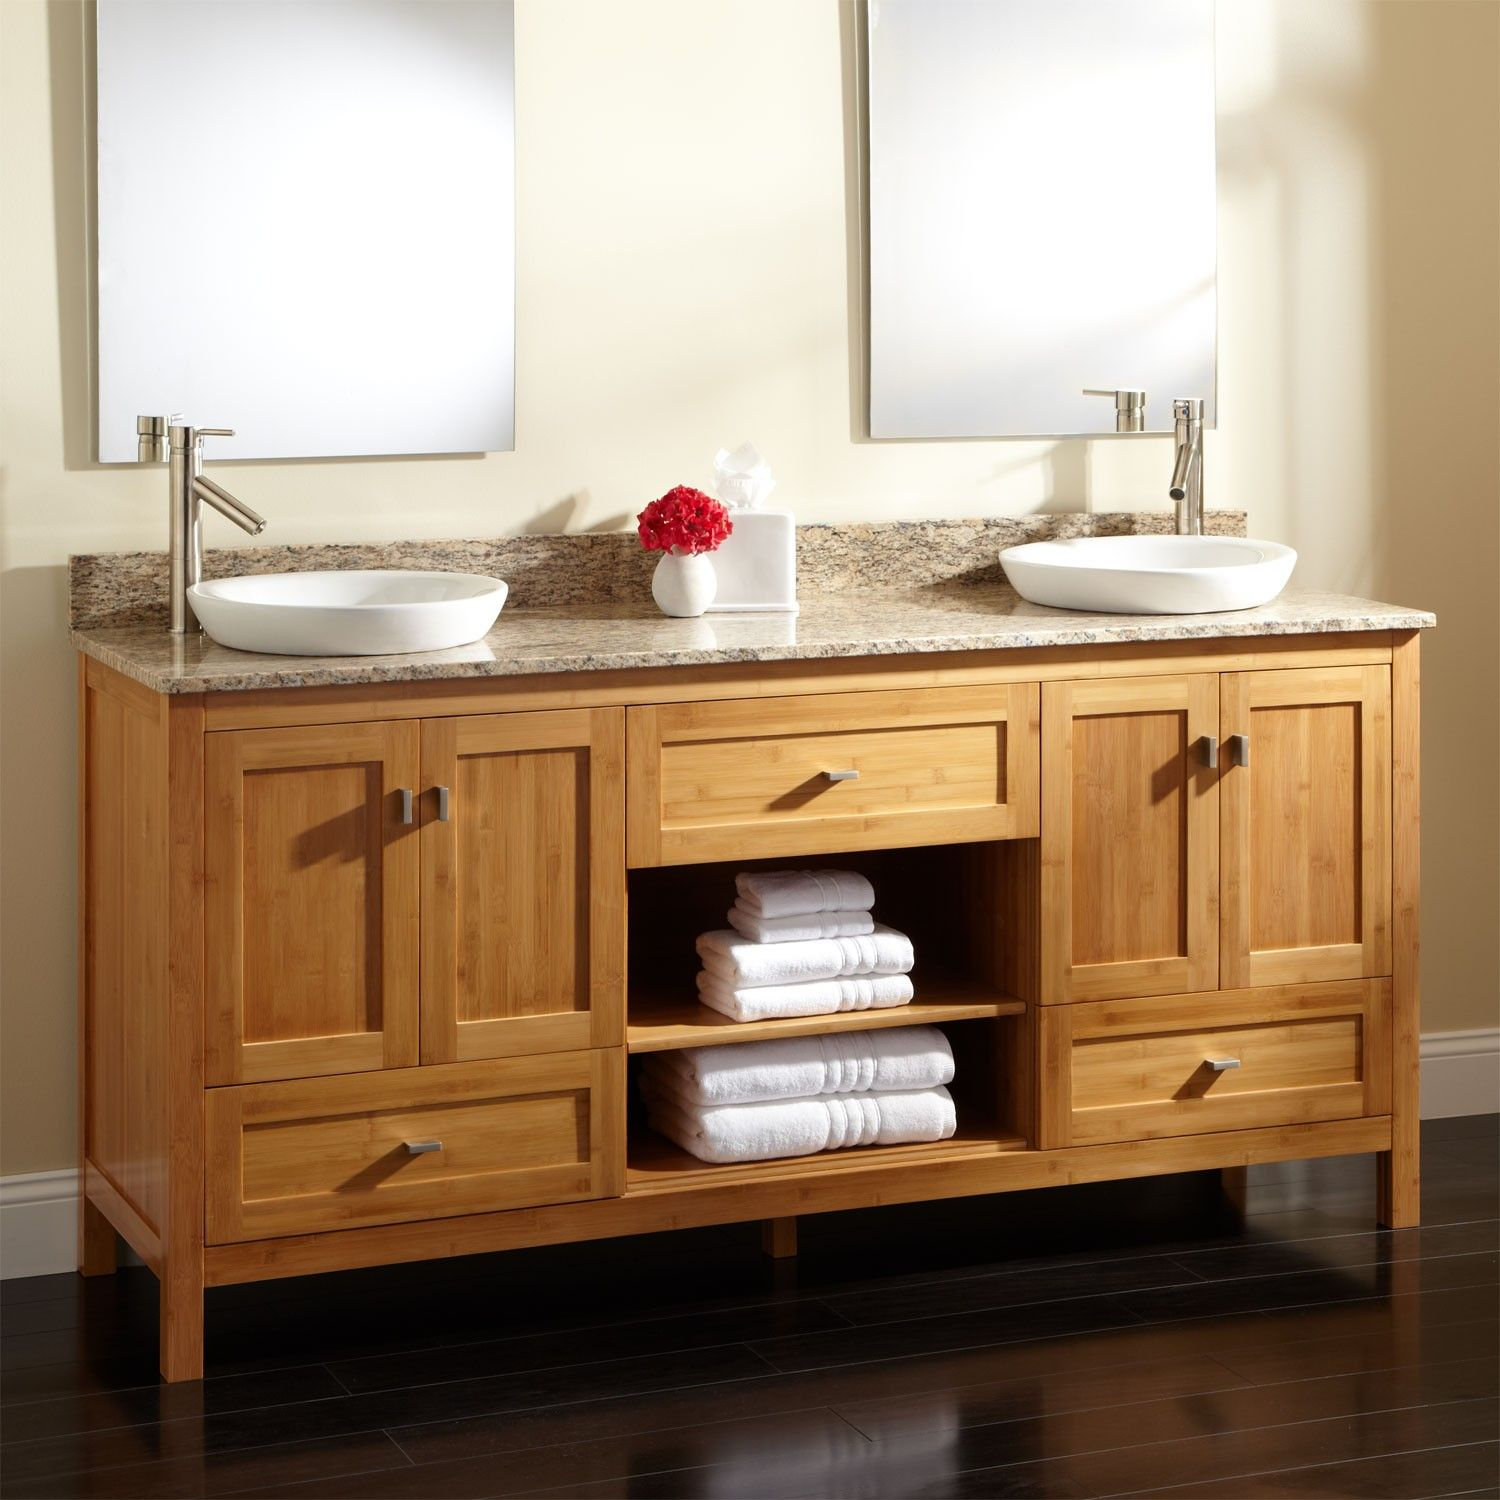 72 Loei Bamboo Double Vanity For Semi Recessed Sinks Bamboo